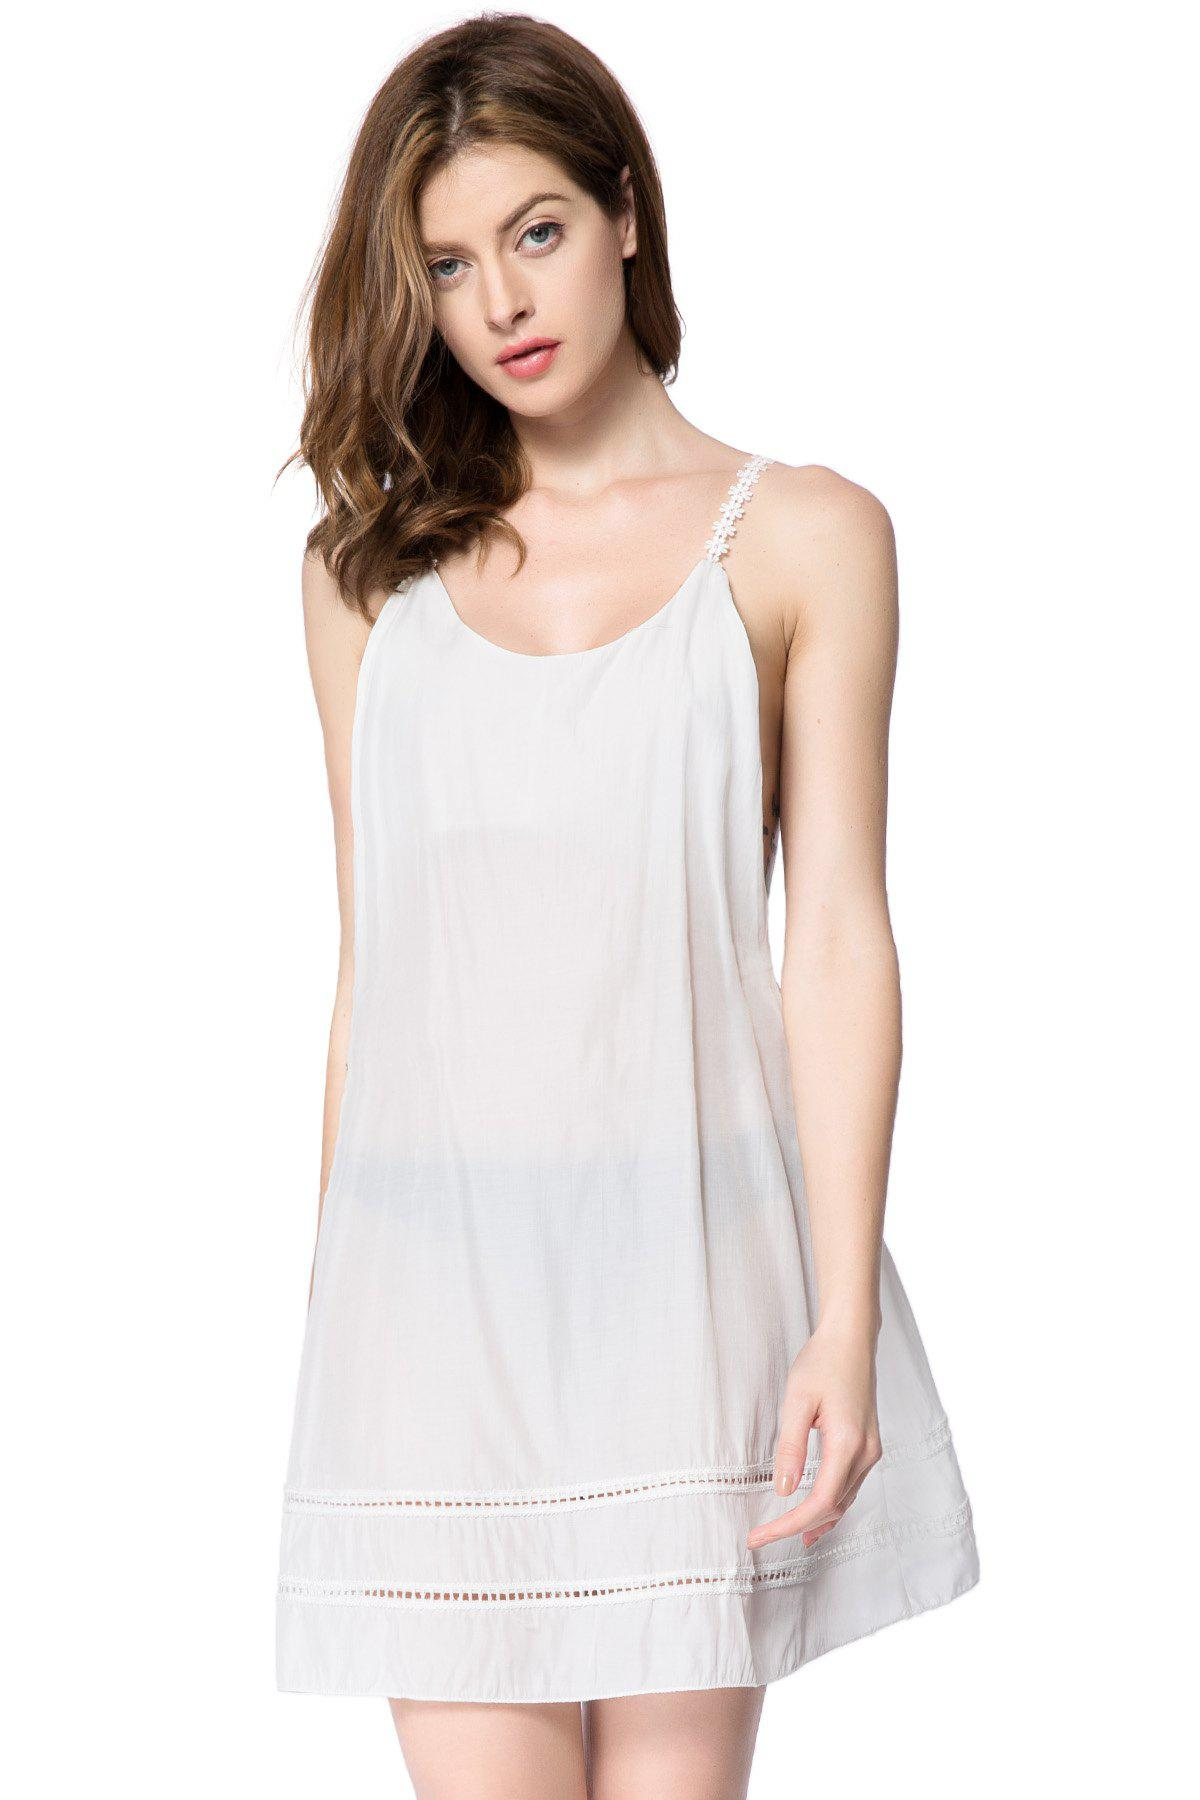 Sexy Scoop Neck Sleeveless Laciness Backless Women's Dress - WHITE S